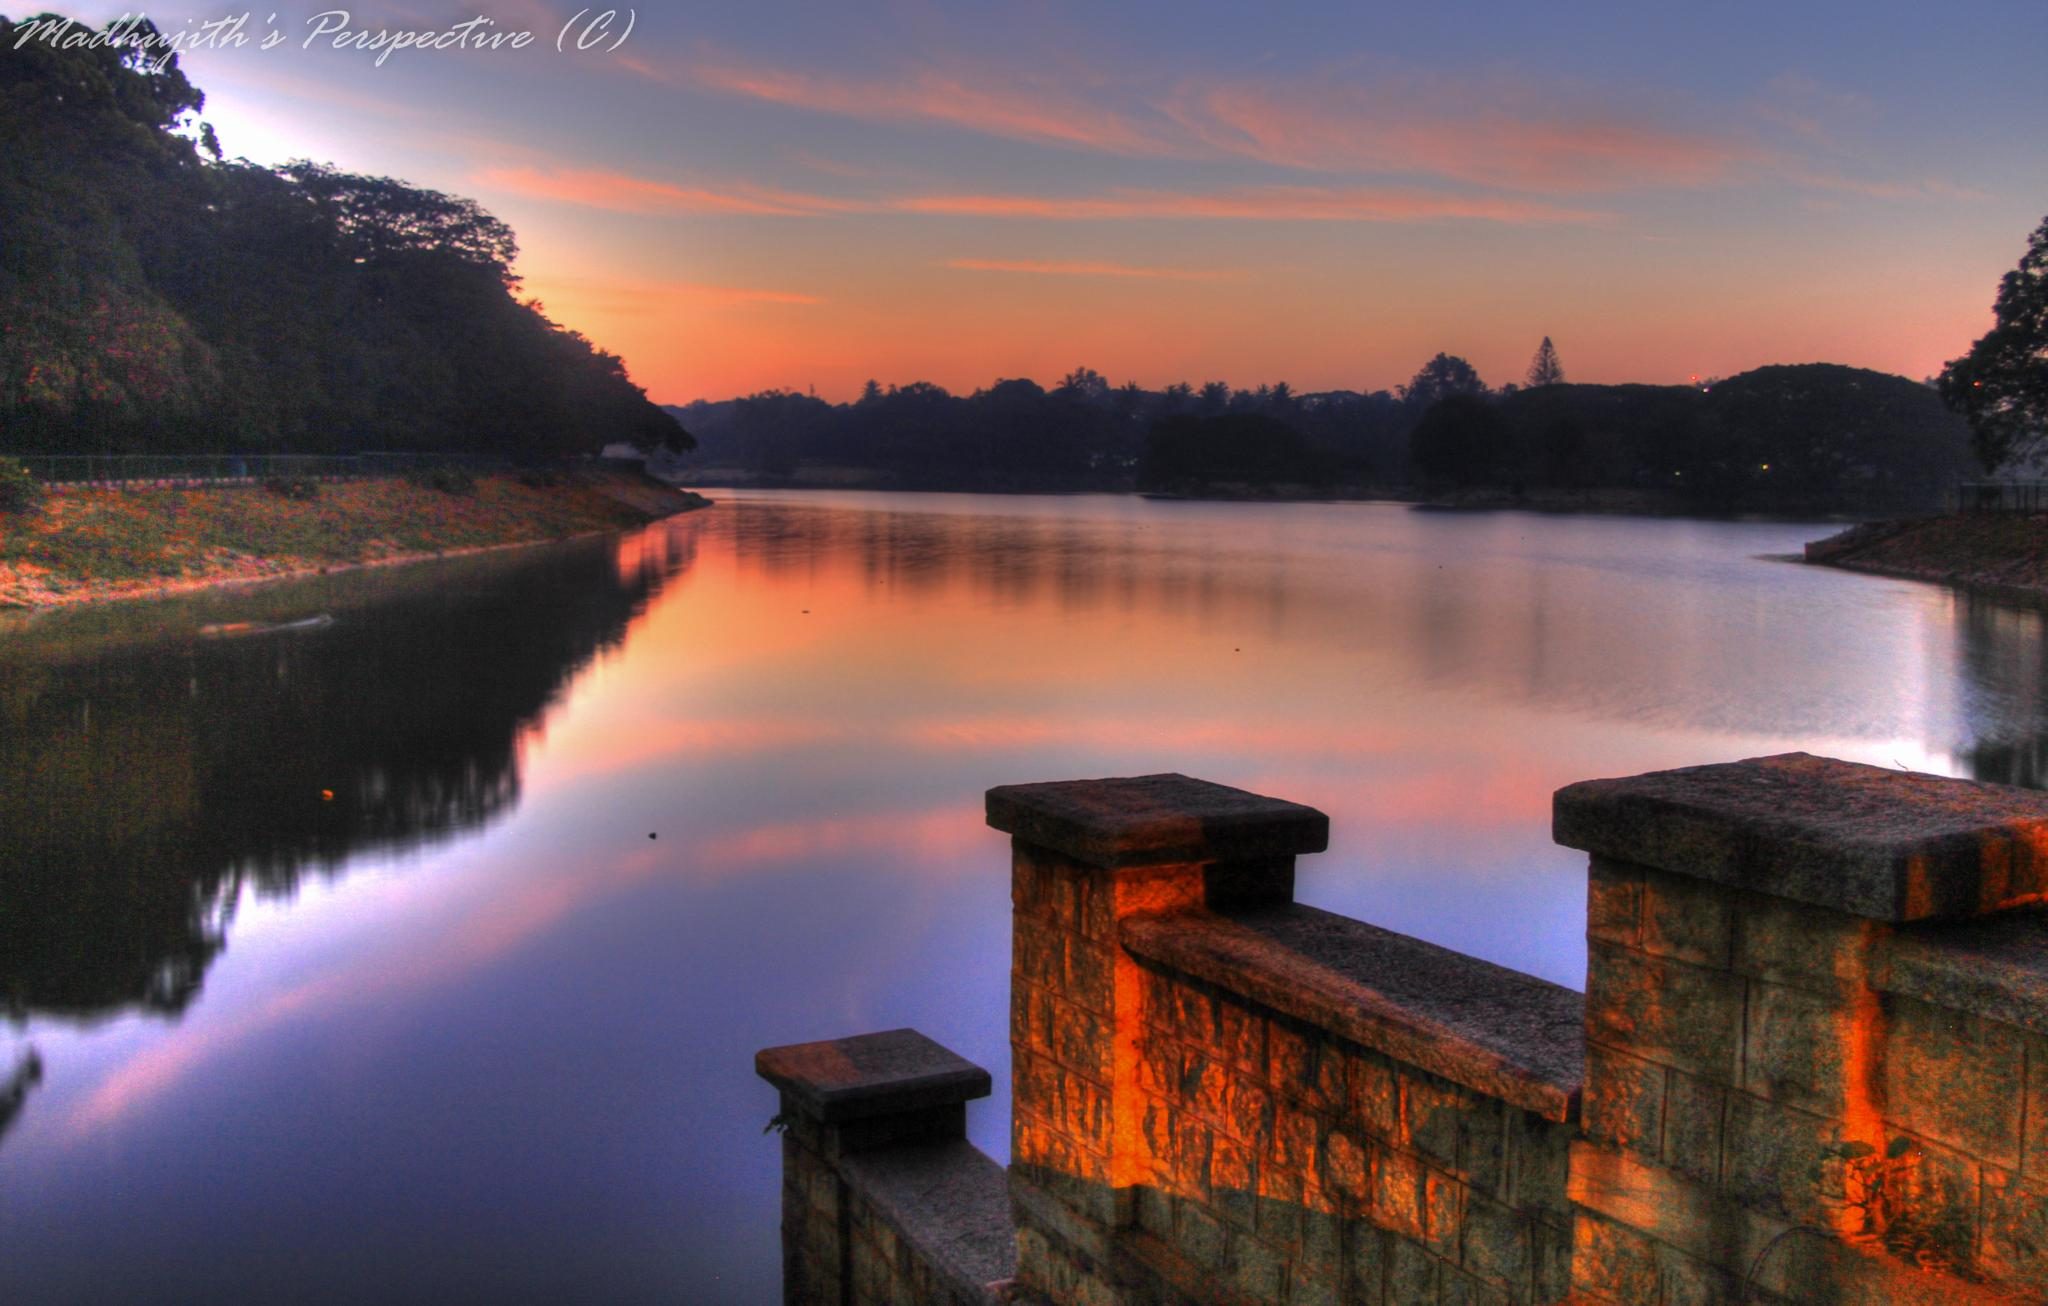 Time for a beautiful day by madhujith